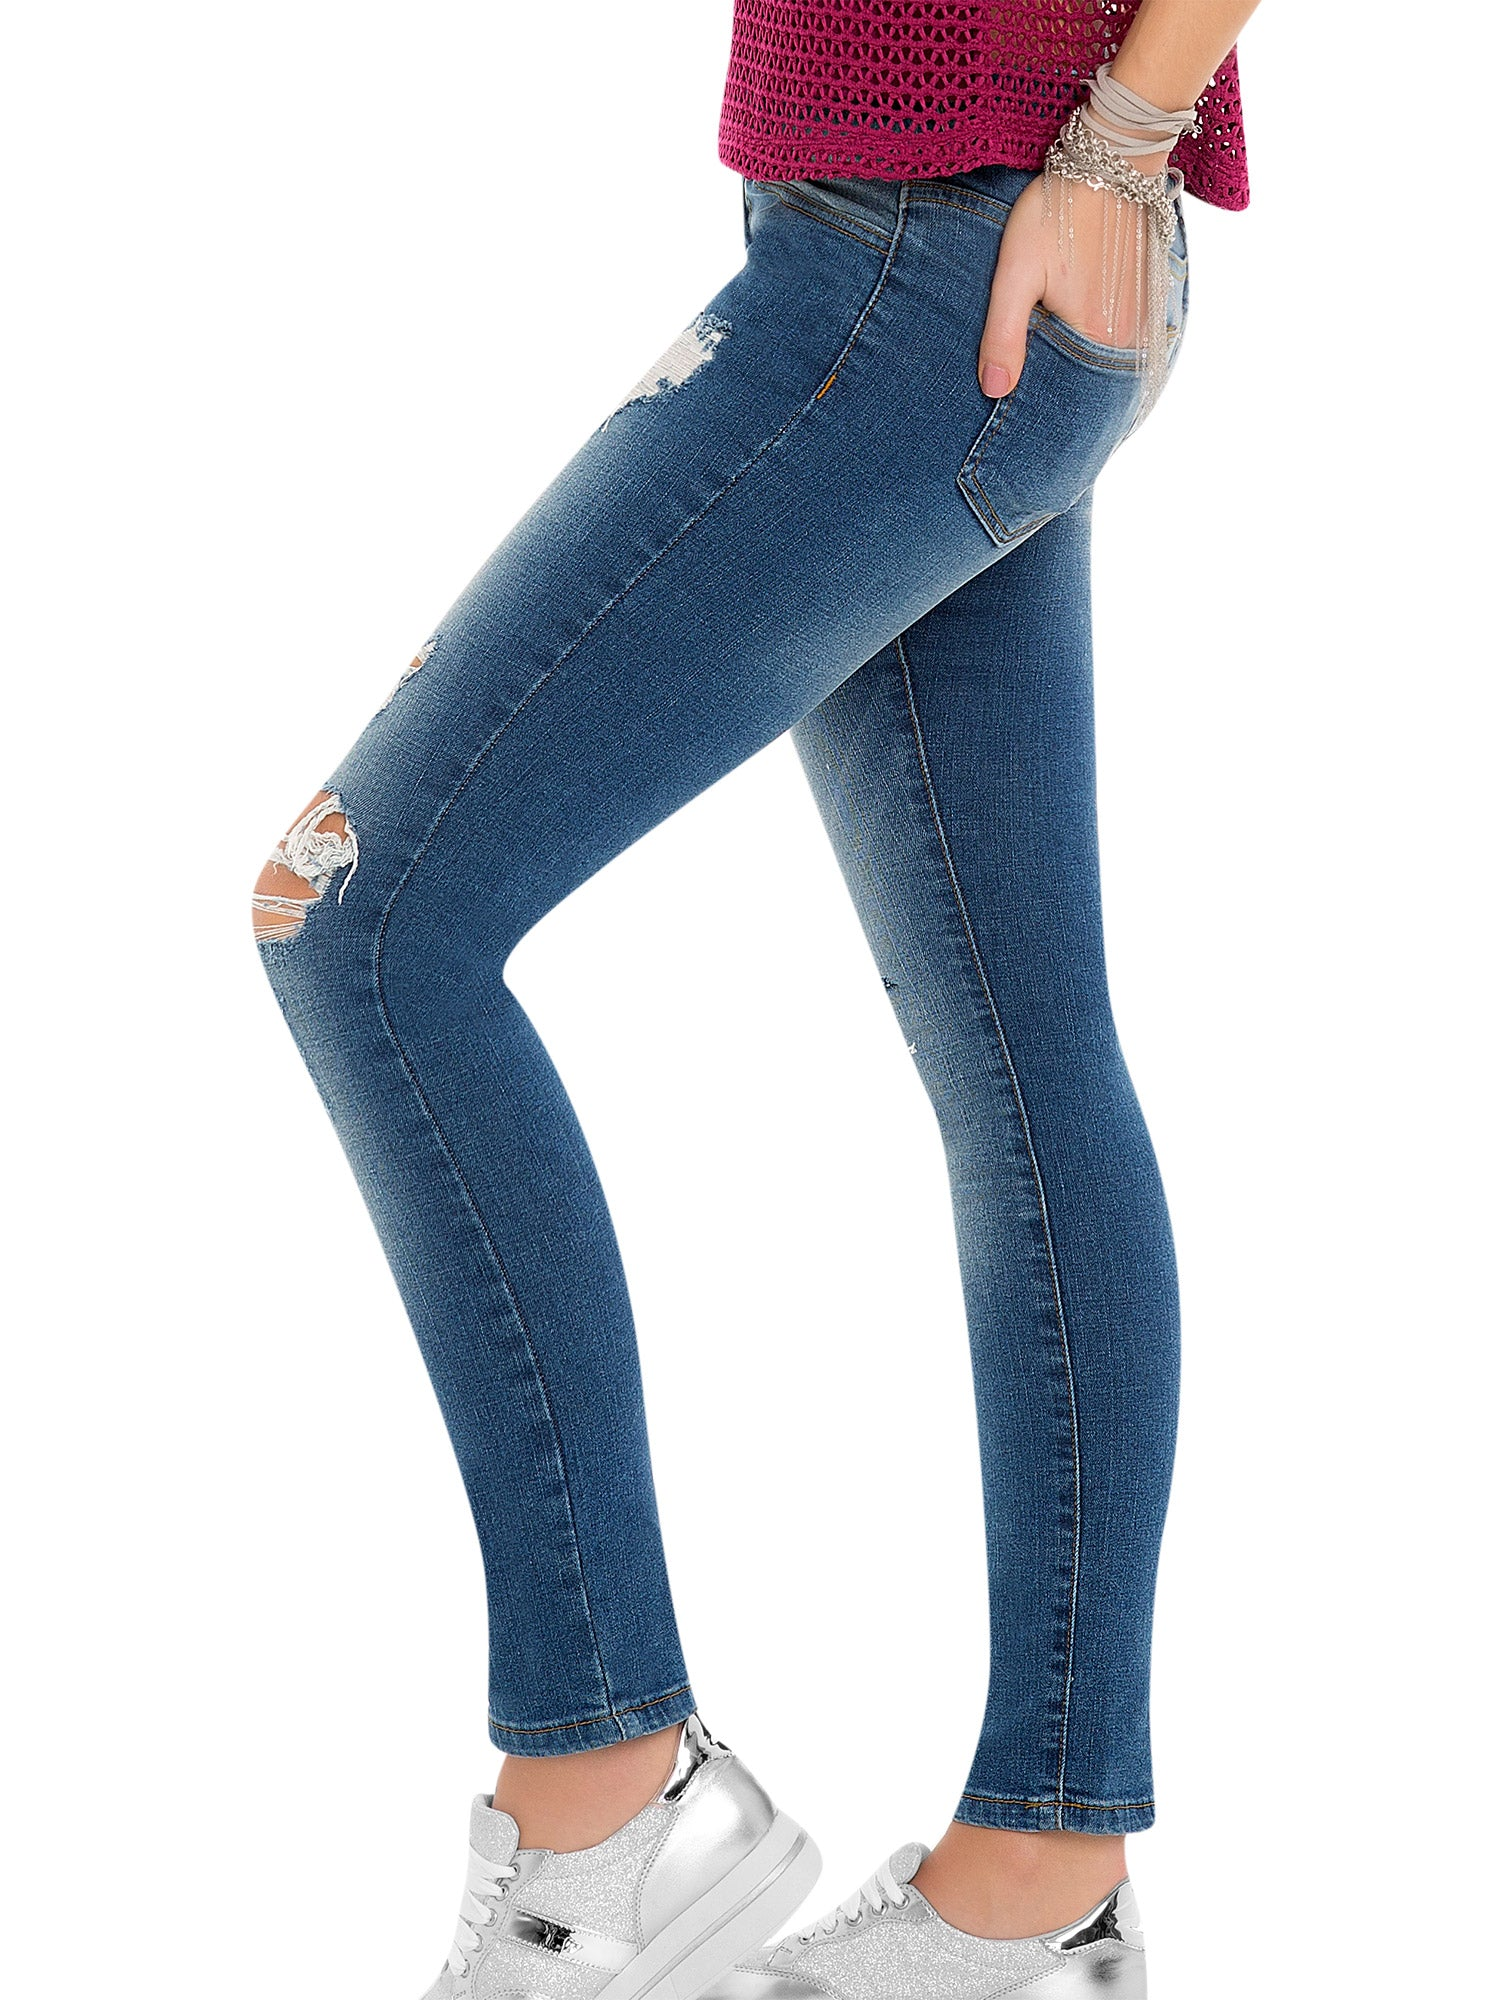 Distressed Jeans 45226